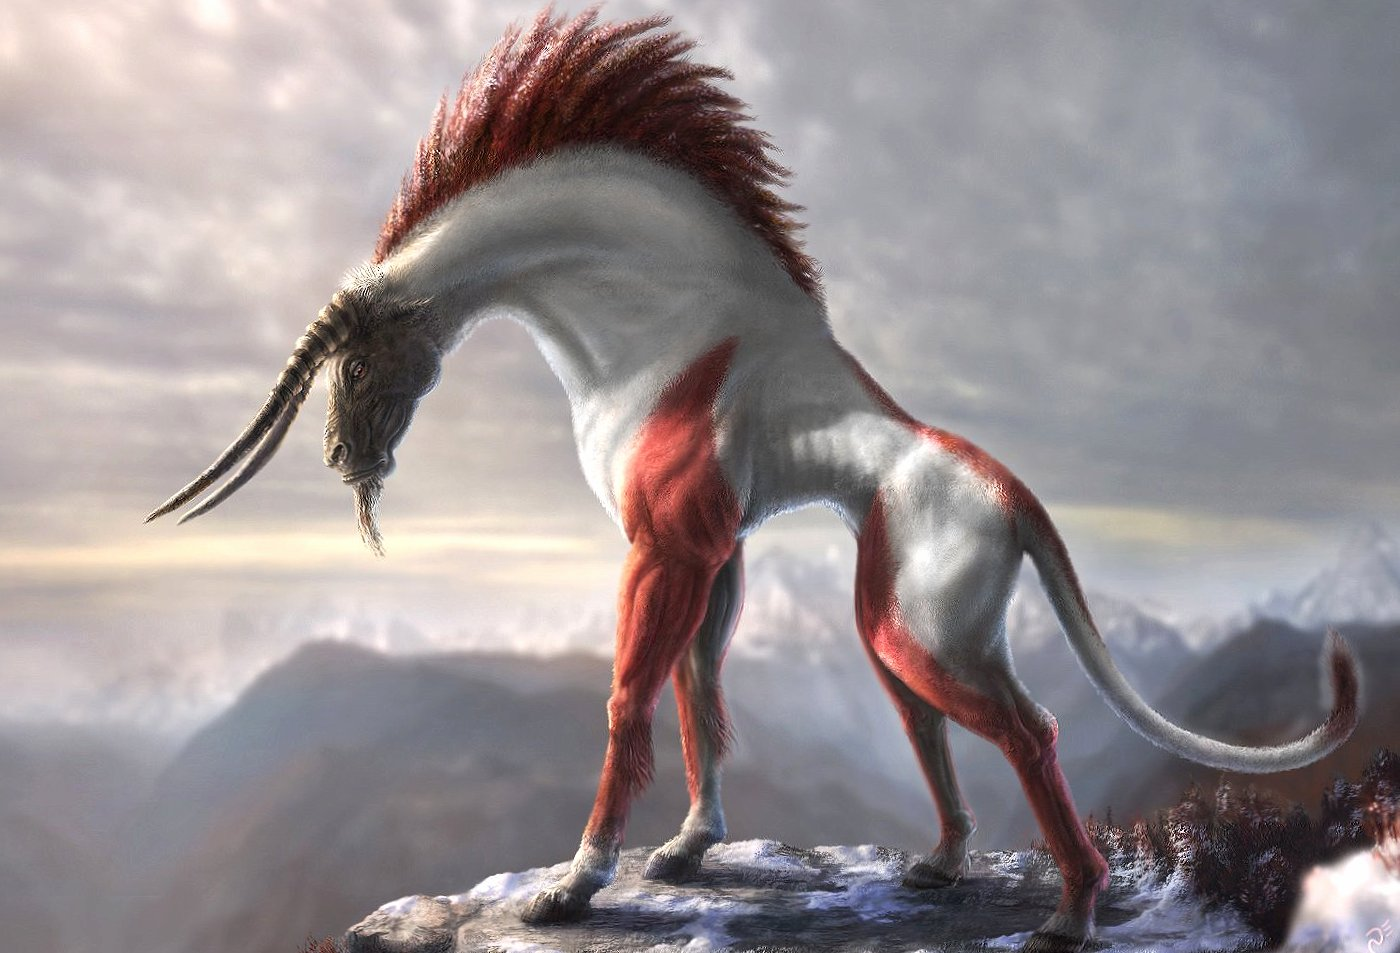 Weird creature fantasy wallpapers HD quality